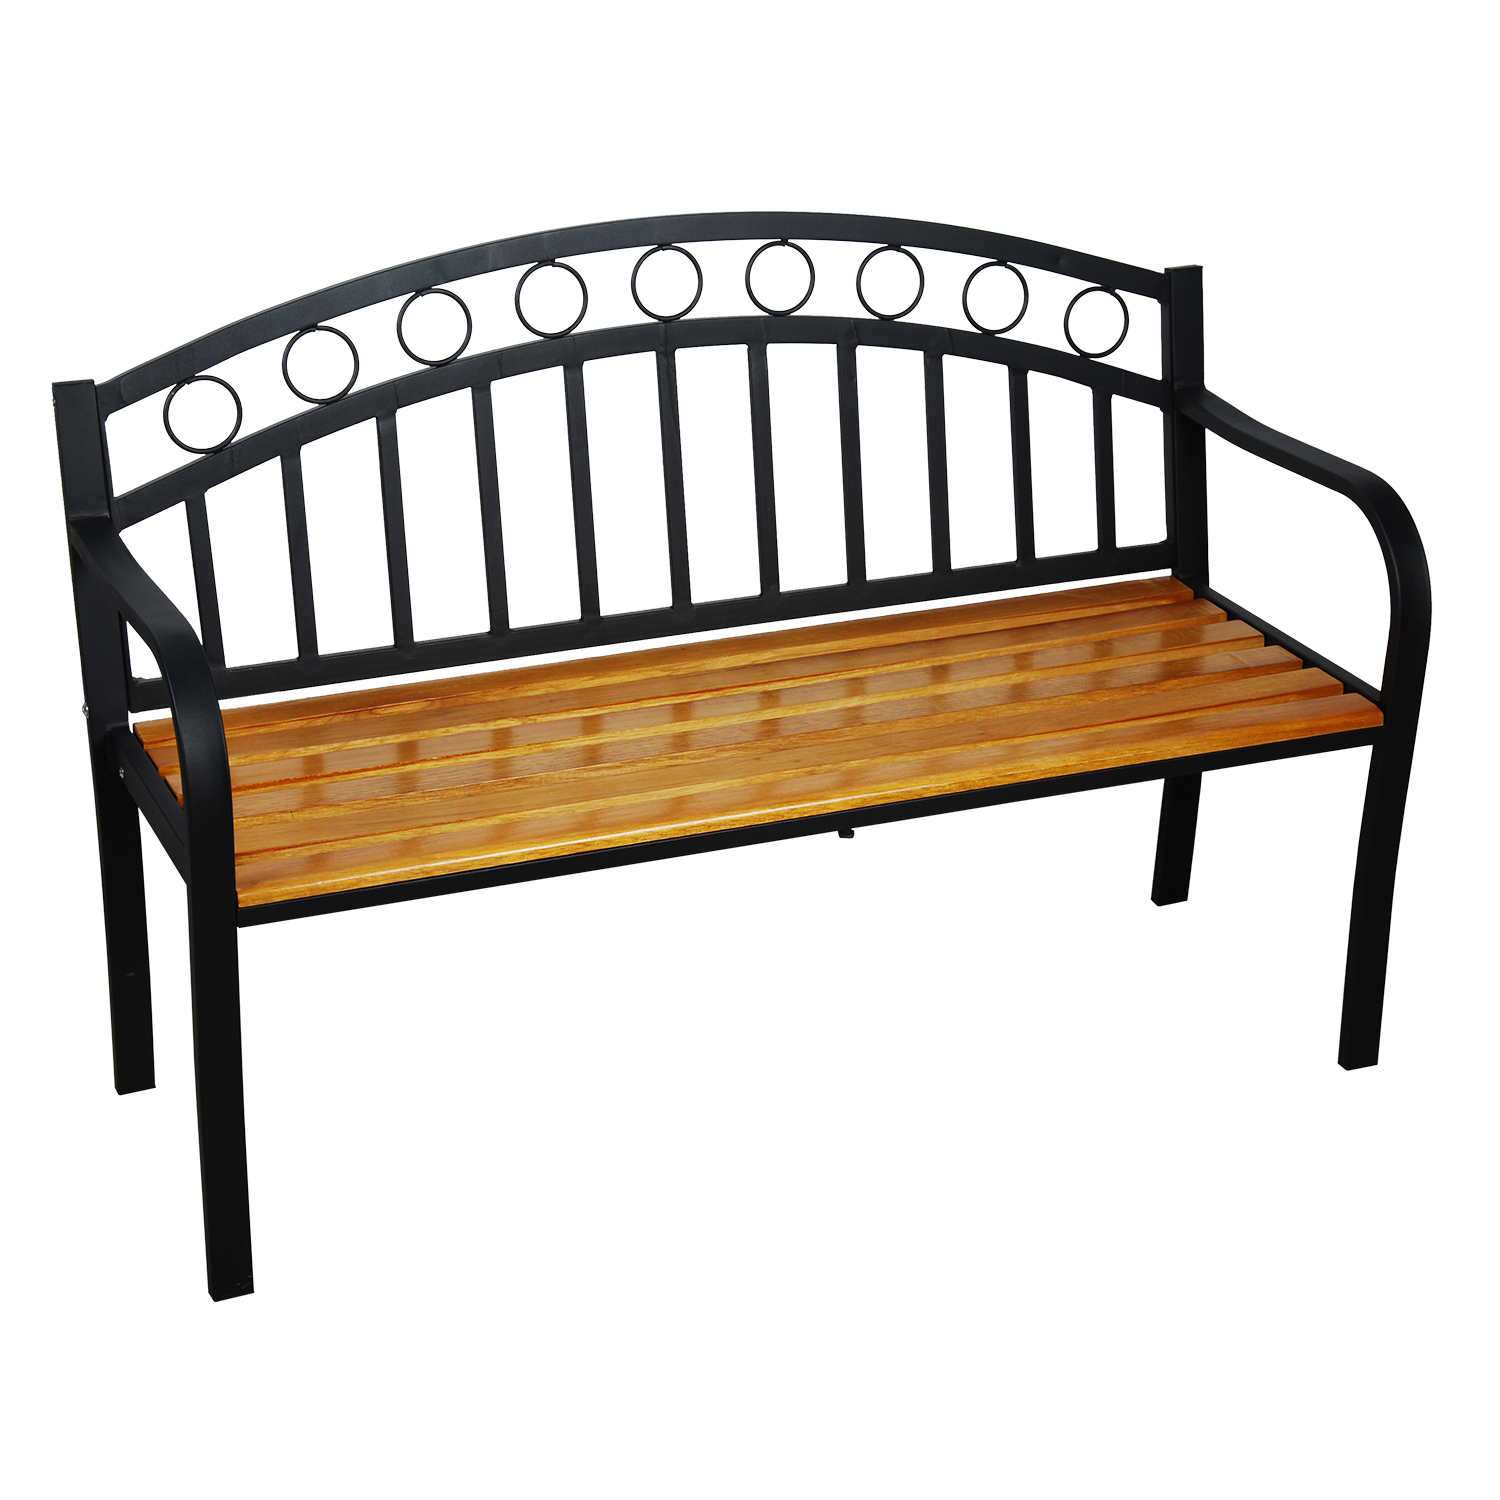 Astonica 50140961 Outdoor Jasper Metal And Wood Garden Bench Ebay